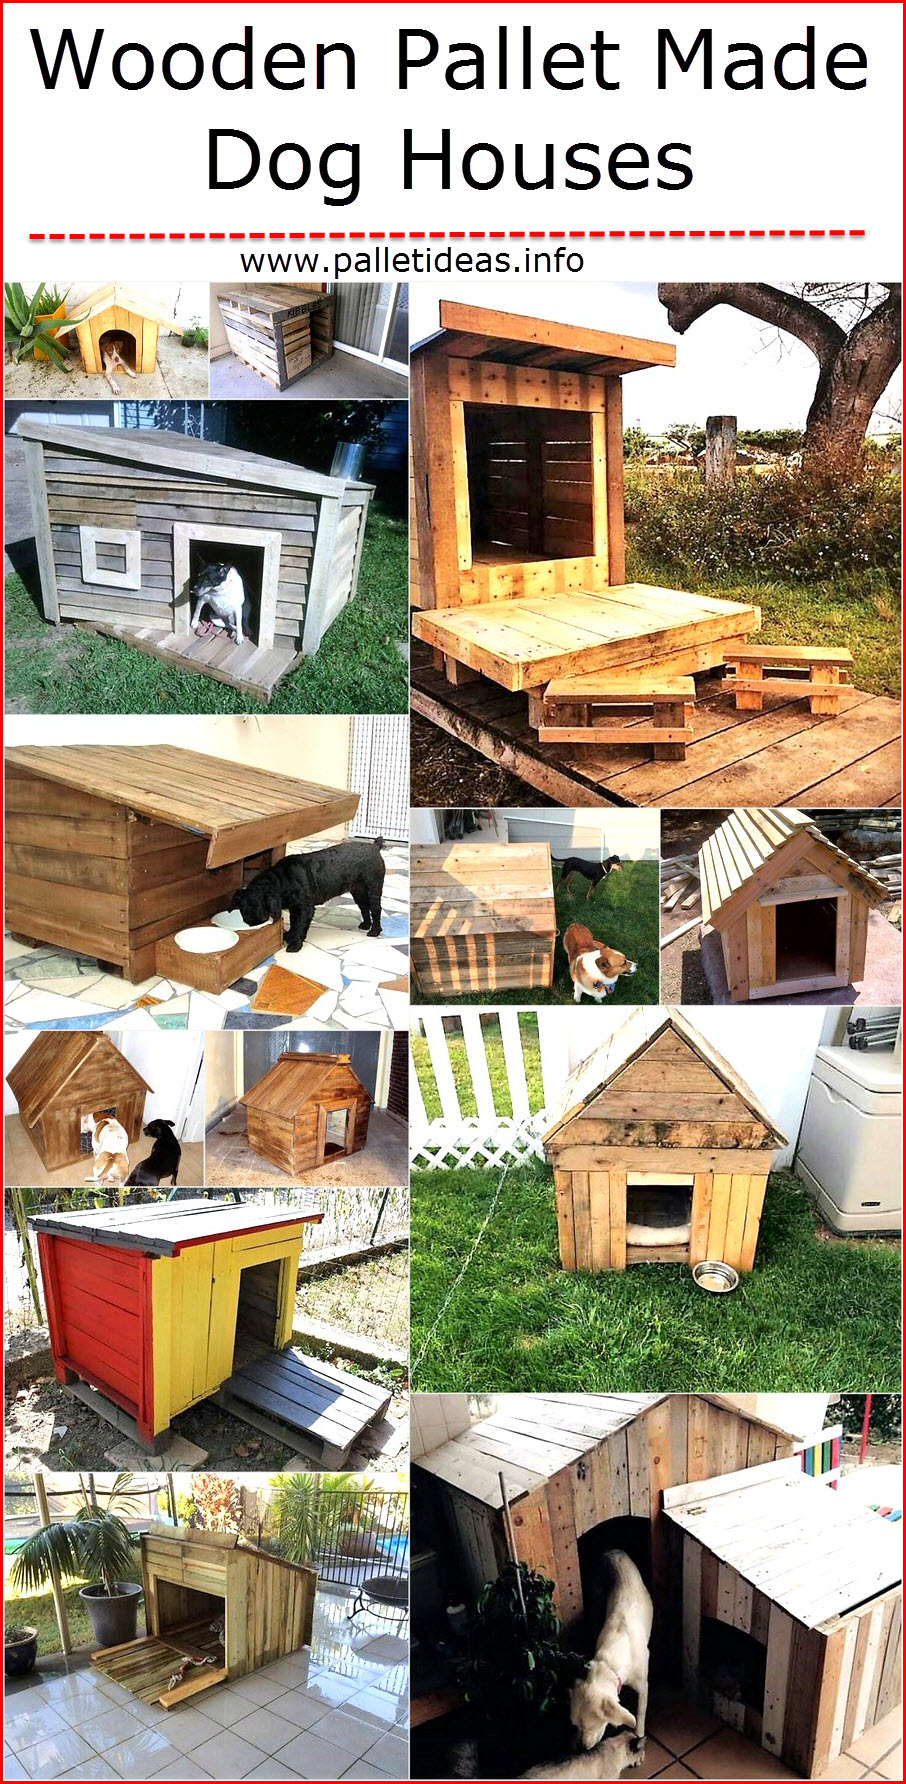 wooden-pallet-made-dog-houses